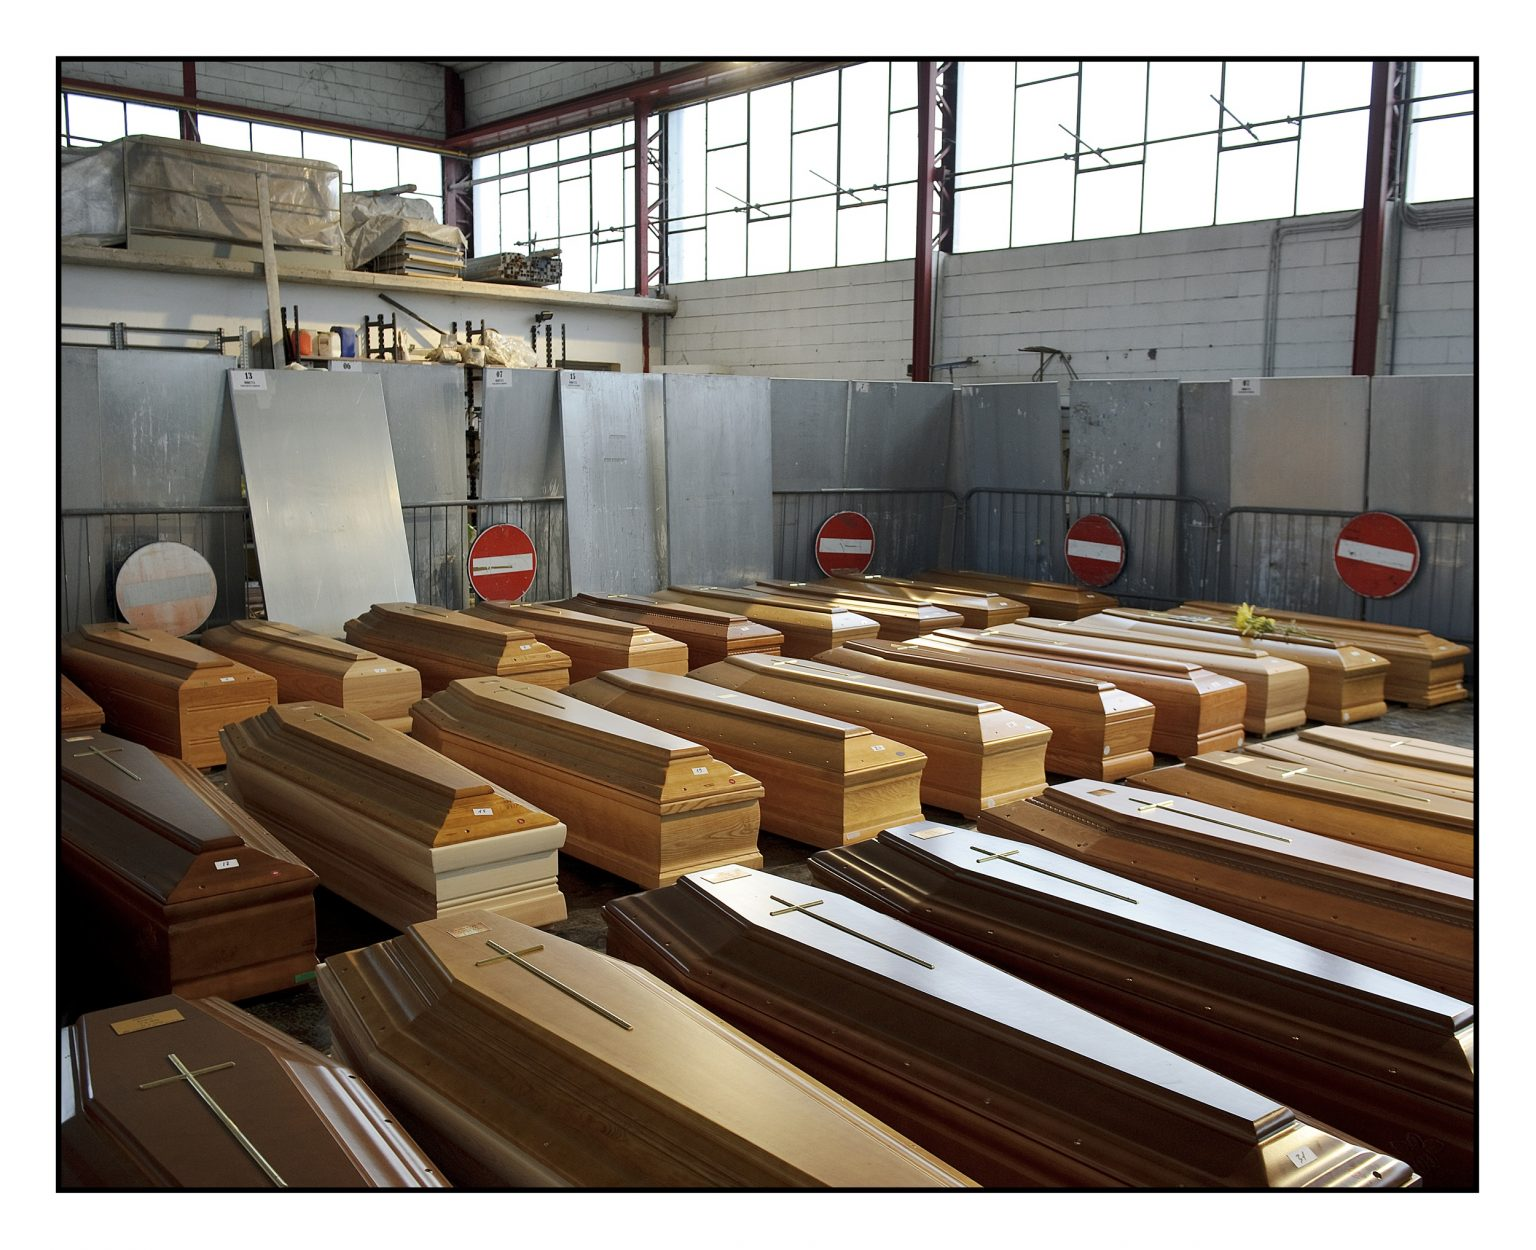 Coffin depots. The coffins that have flowed into the emergency depot of Ponte San Pietro, where the dead people from the western part of the Bergamo province are collected. There are about 30 coffins waiting to be transported out of the province, to the available crematory ovens. Ponte San Pietro, March 26th 2020